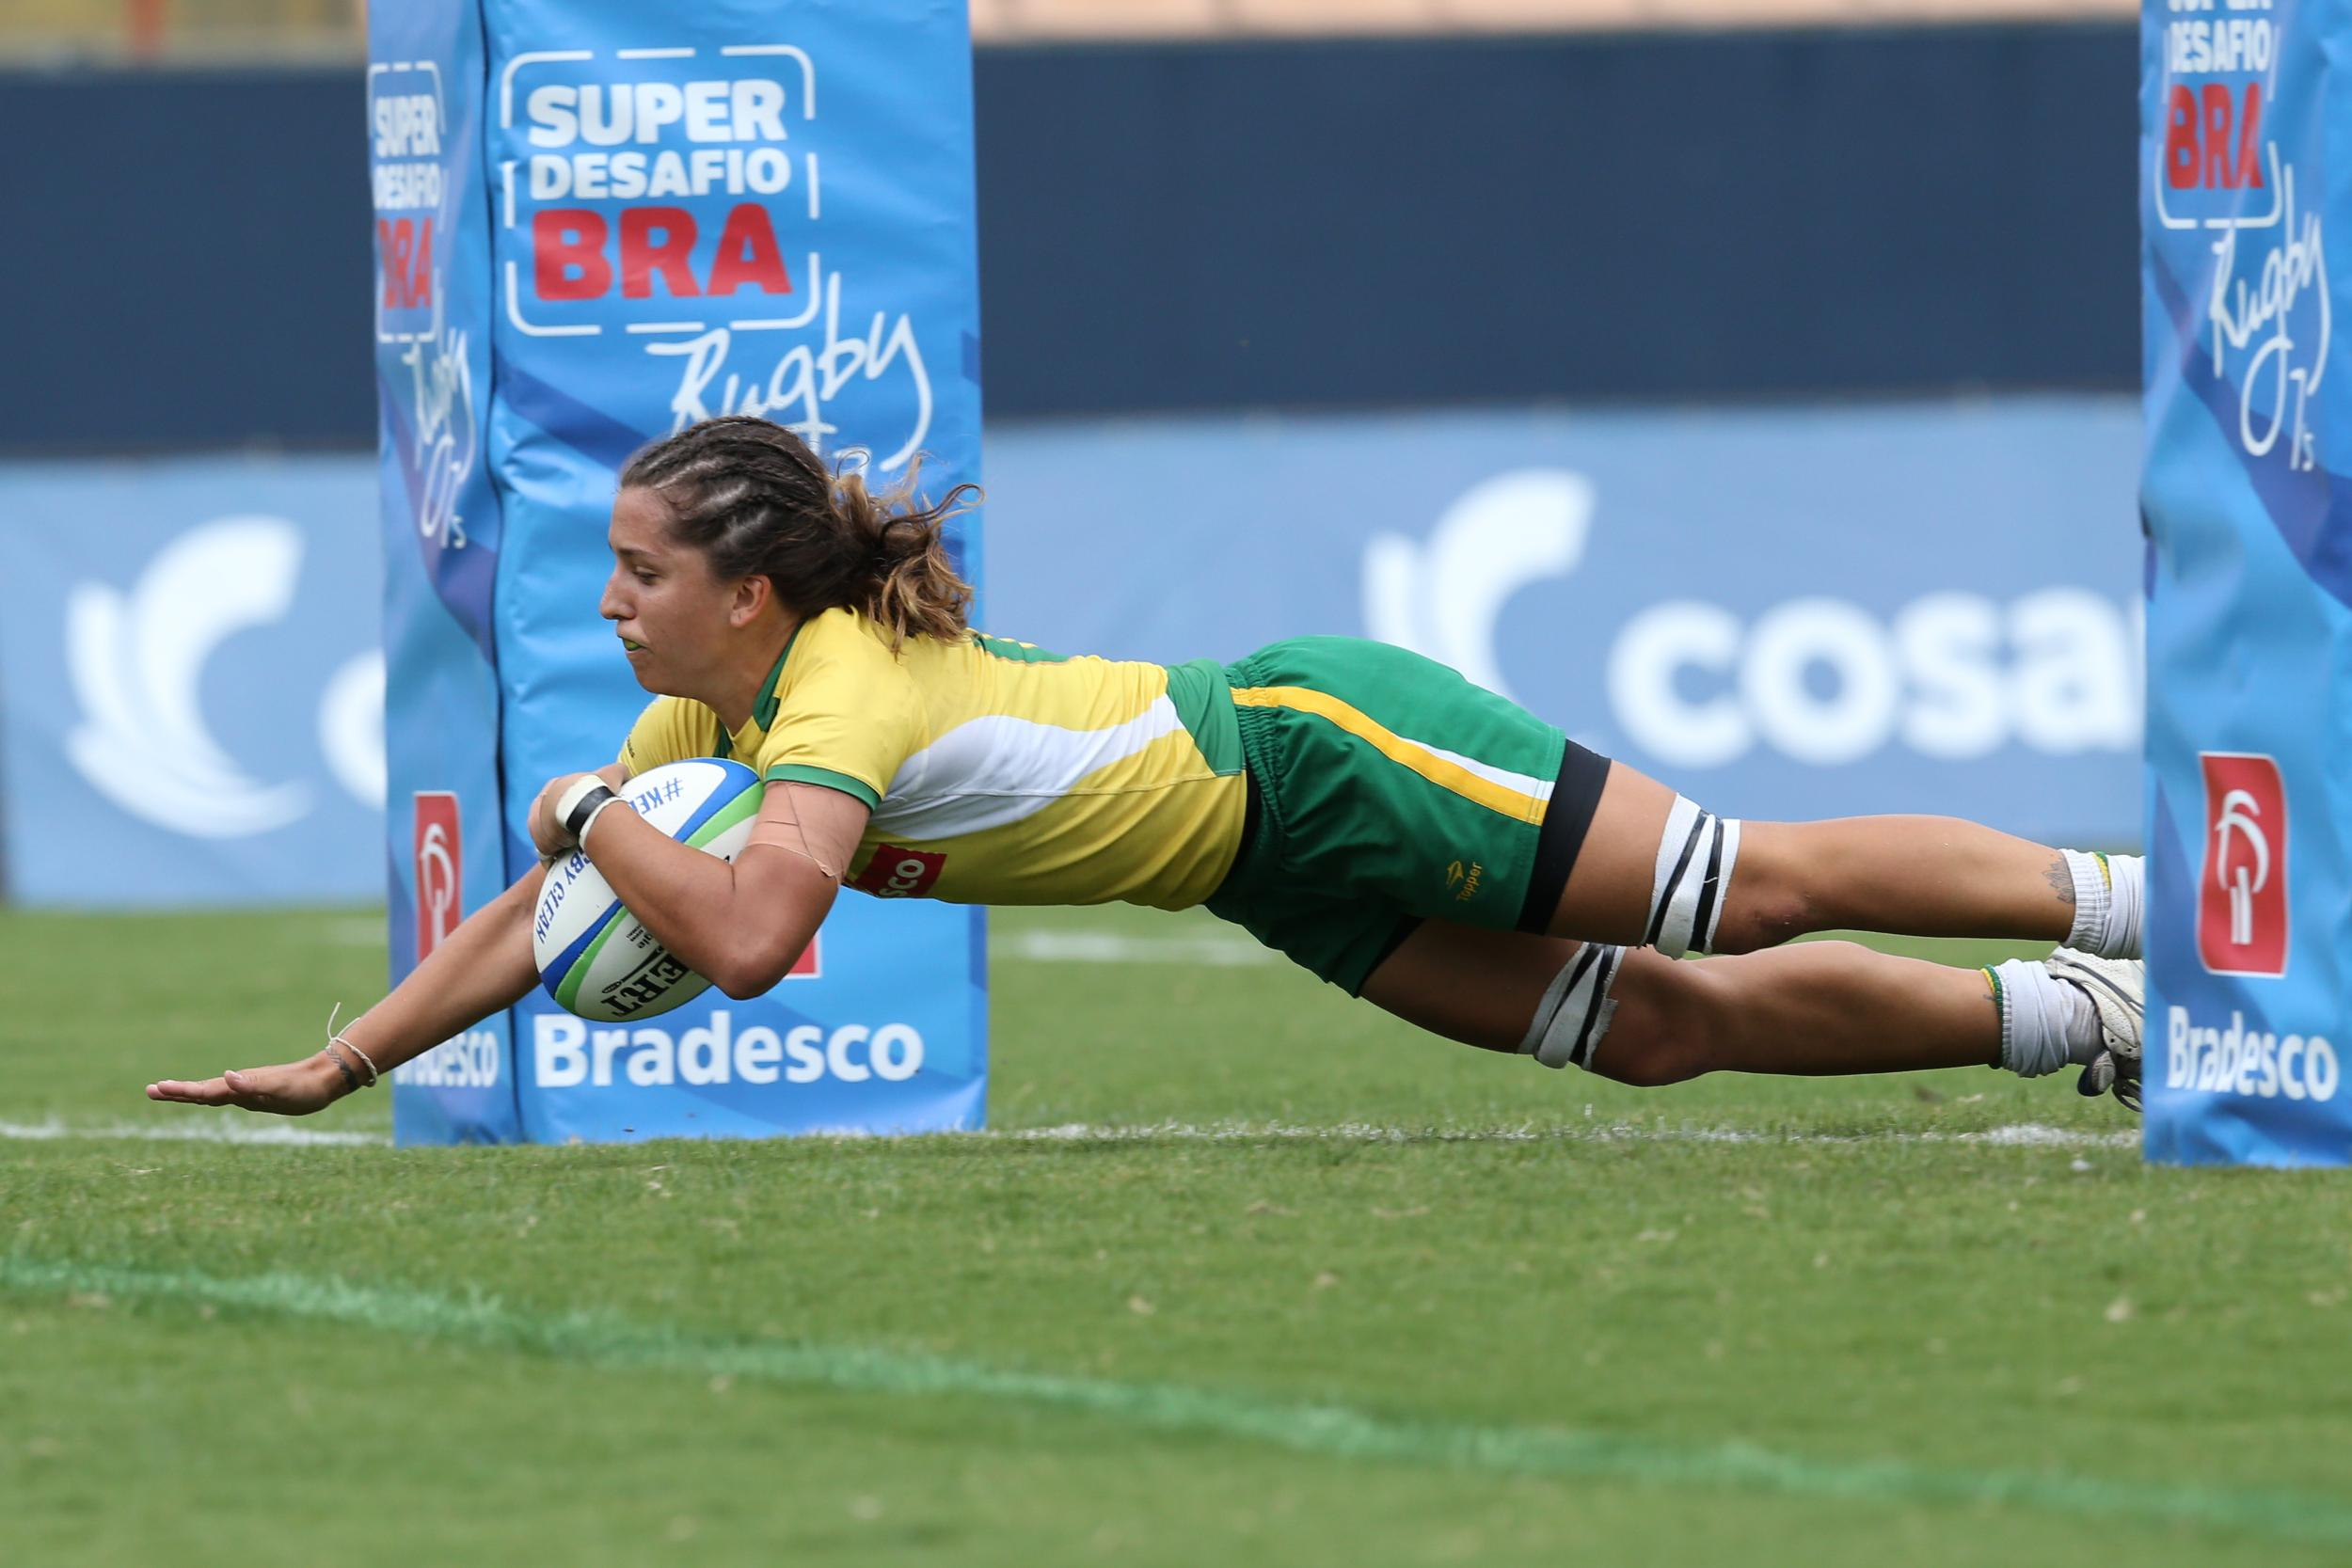 Brazil earned two victories from their pool matches to progress ©World Rugby